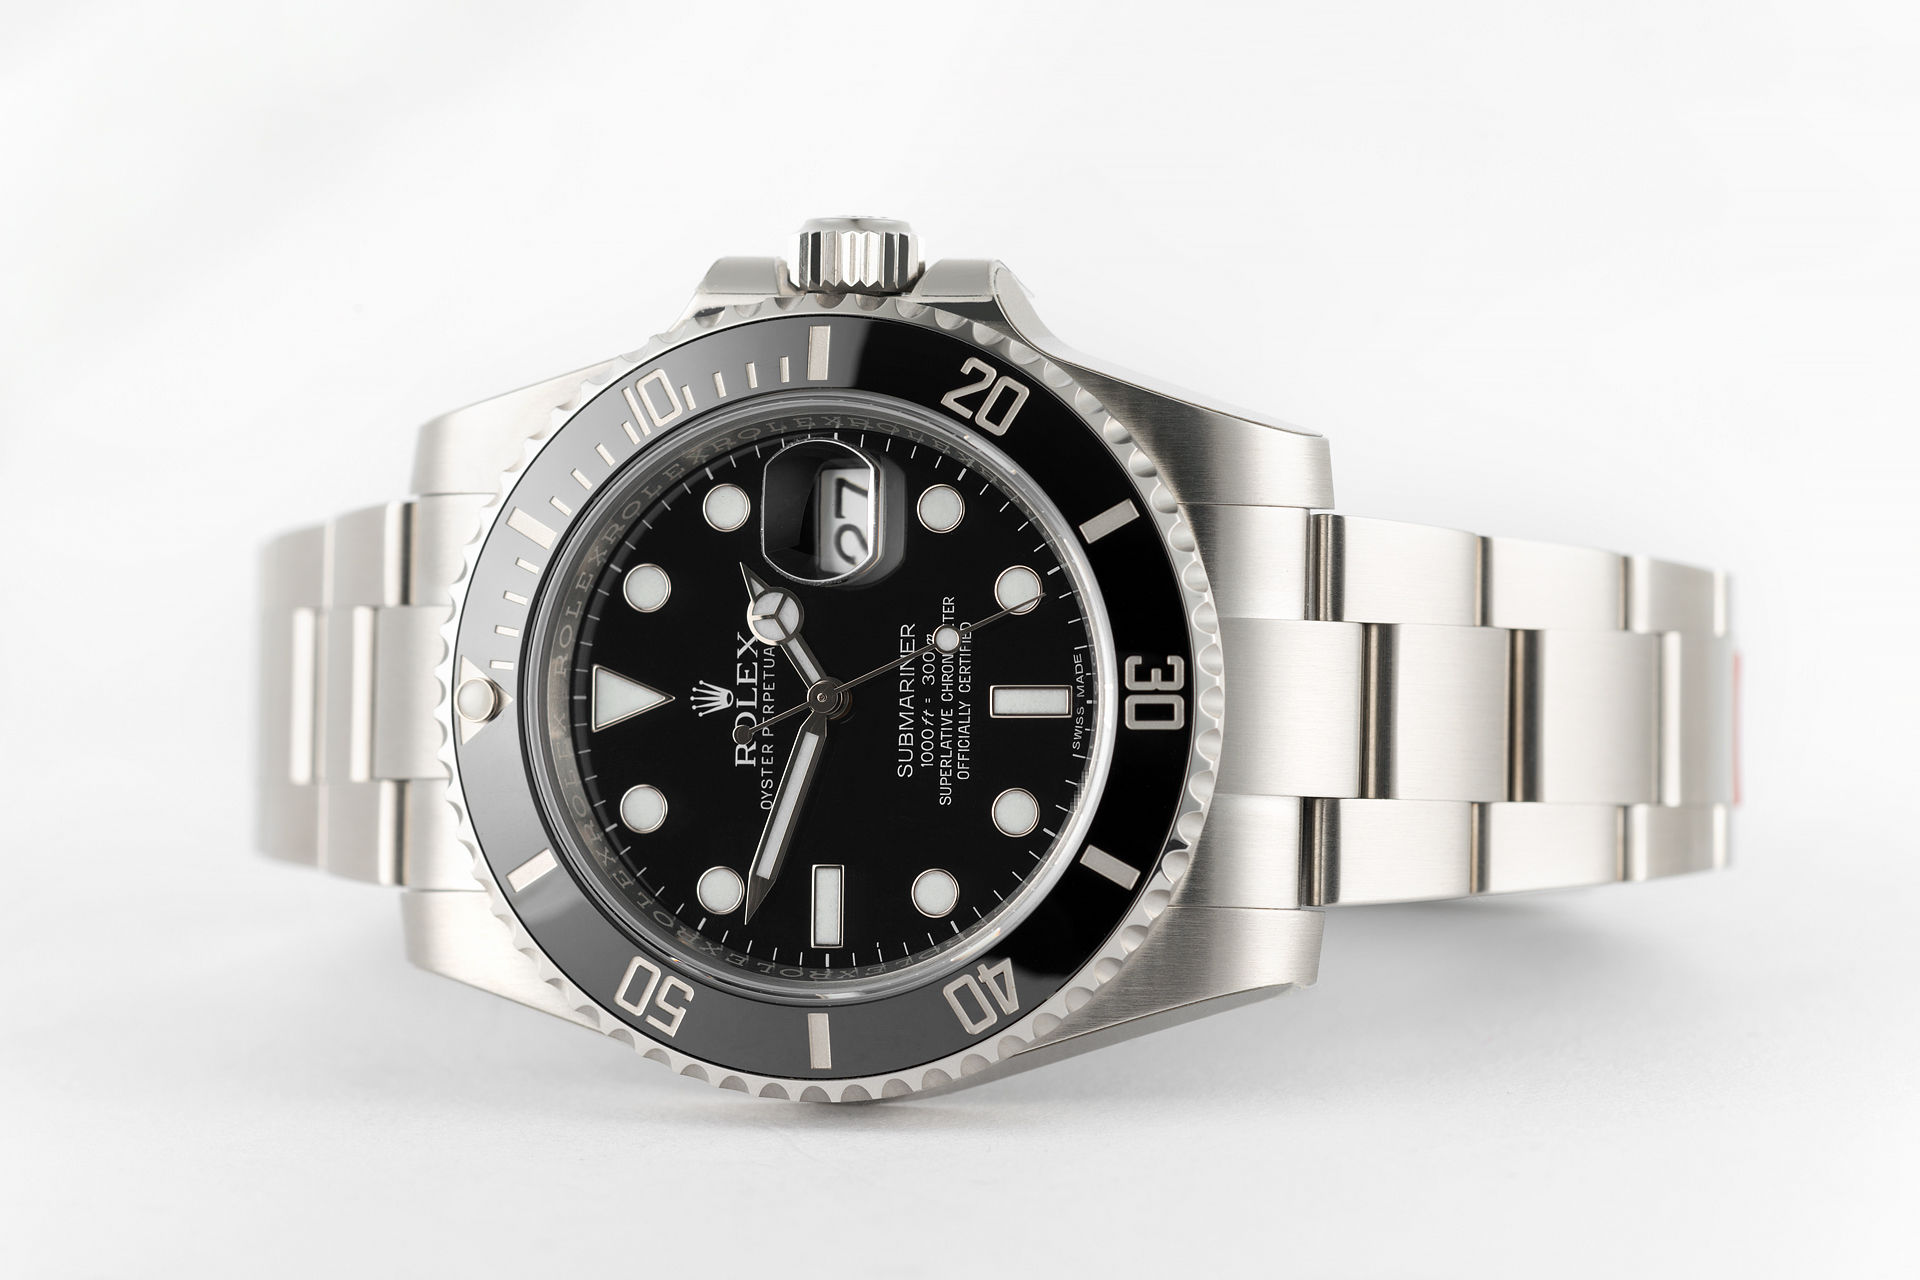 ref 116610LN | 'Fully Stickered' Unworn | Rolex Submariner Date